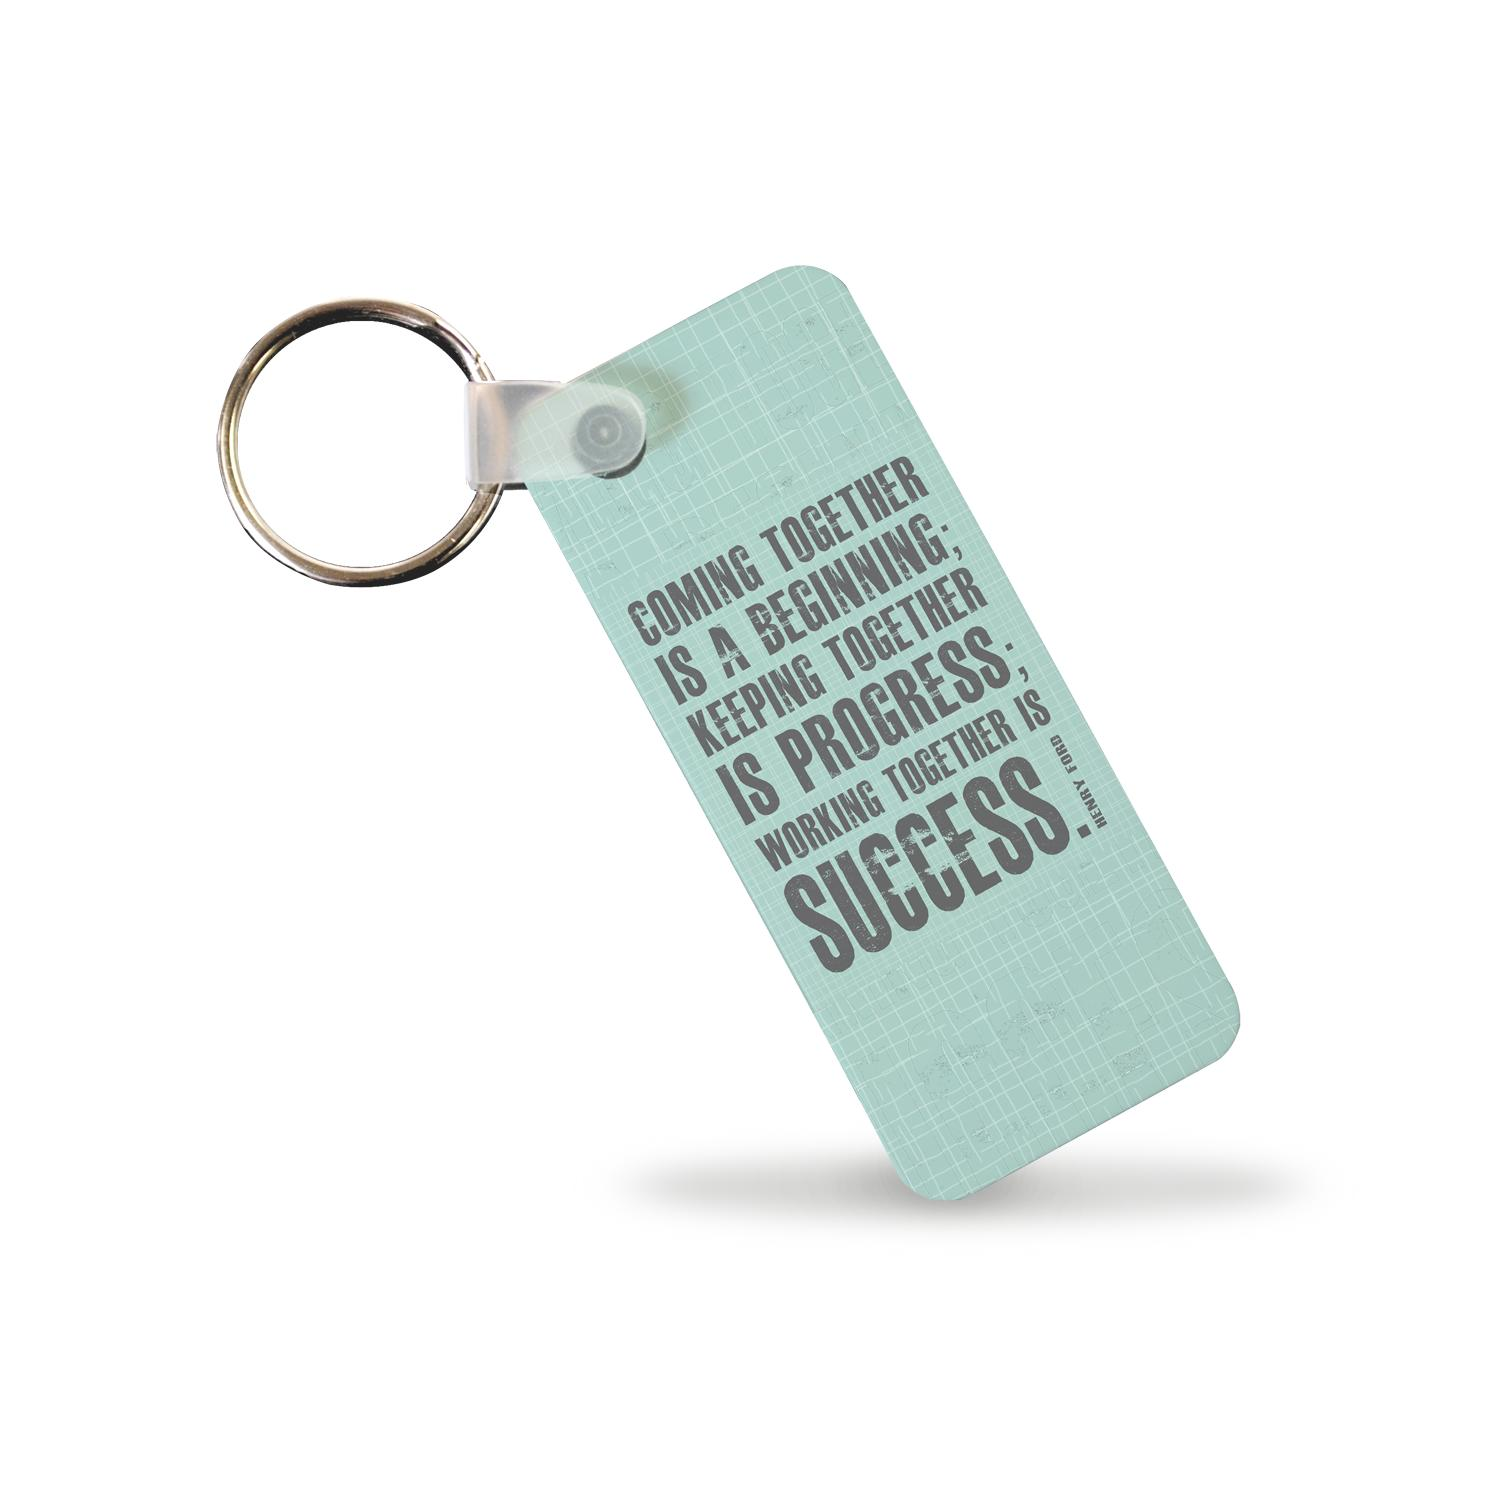 Working Together Keychain